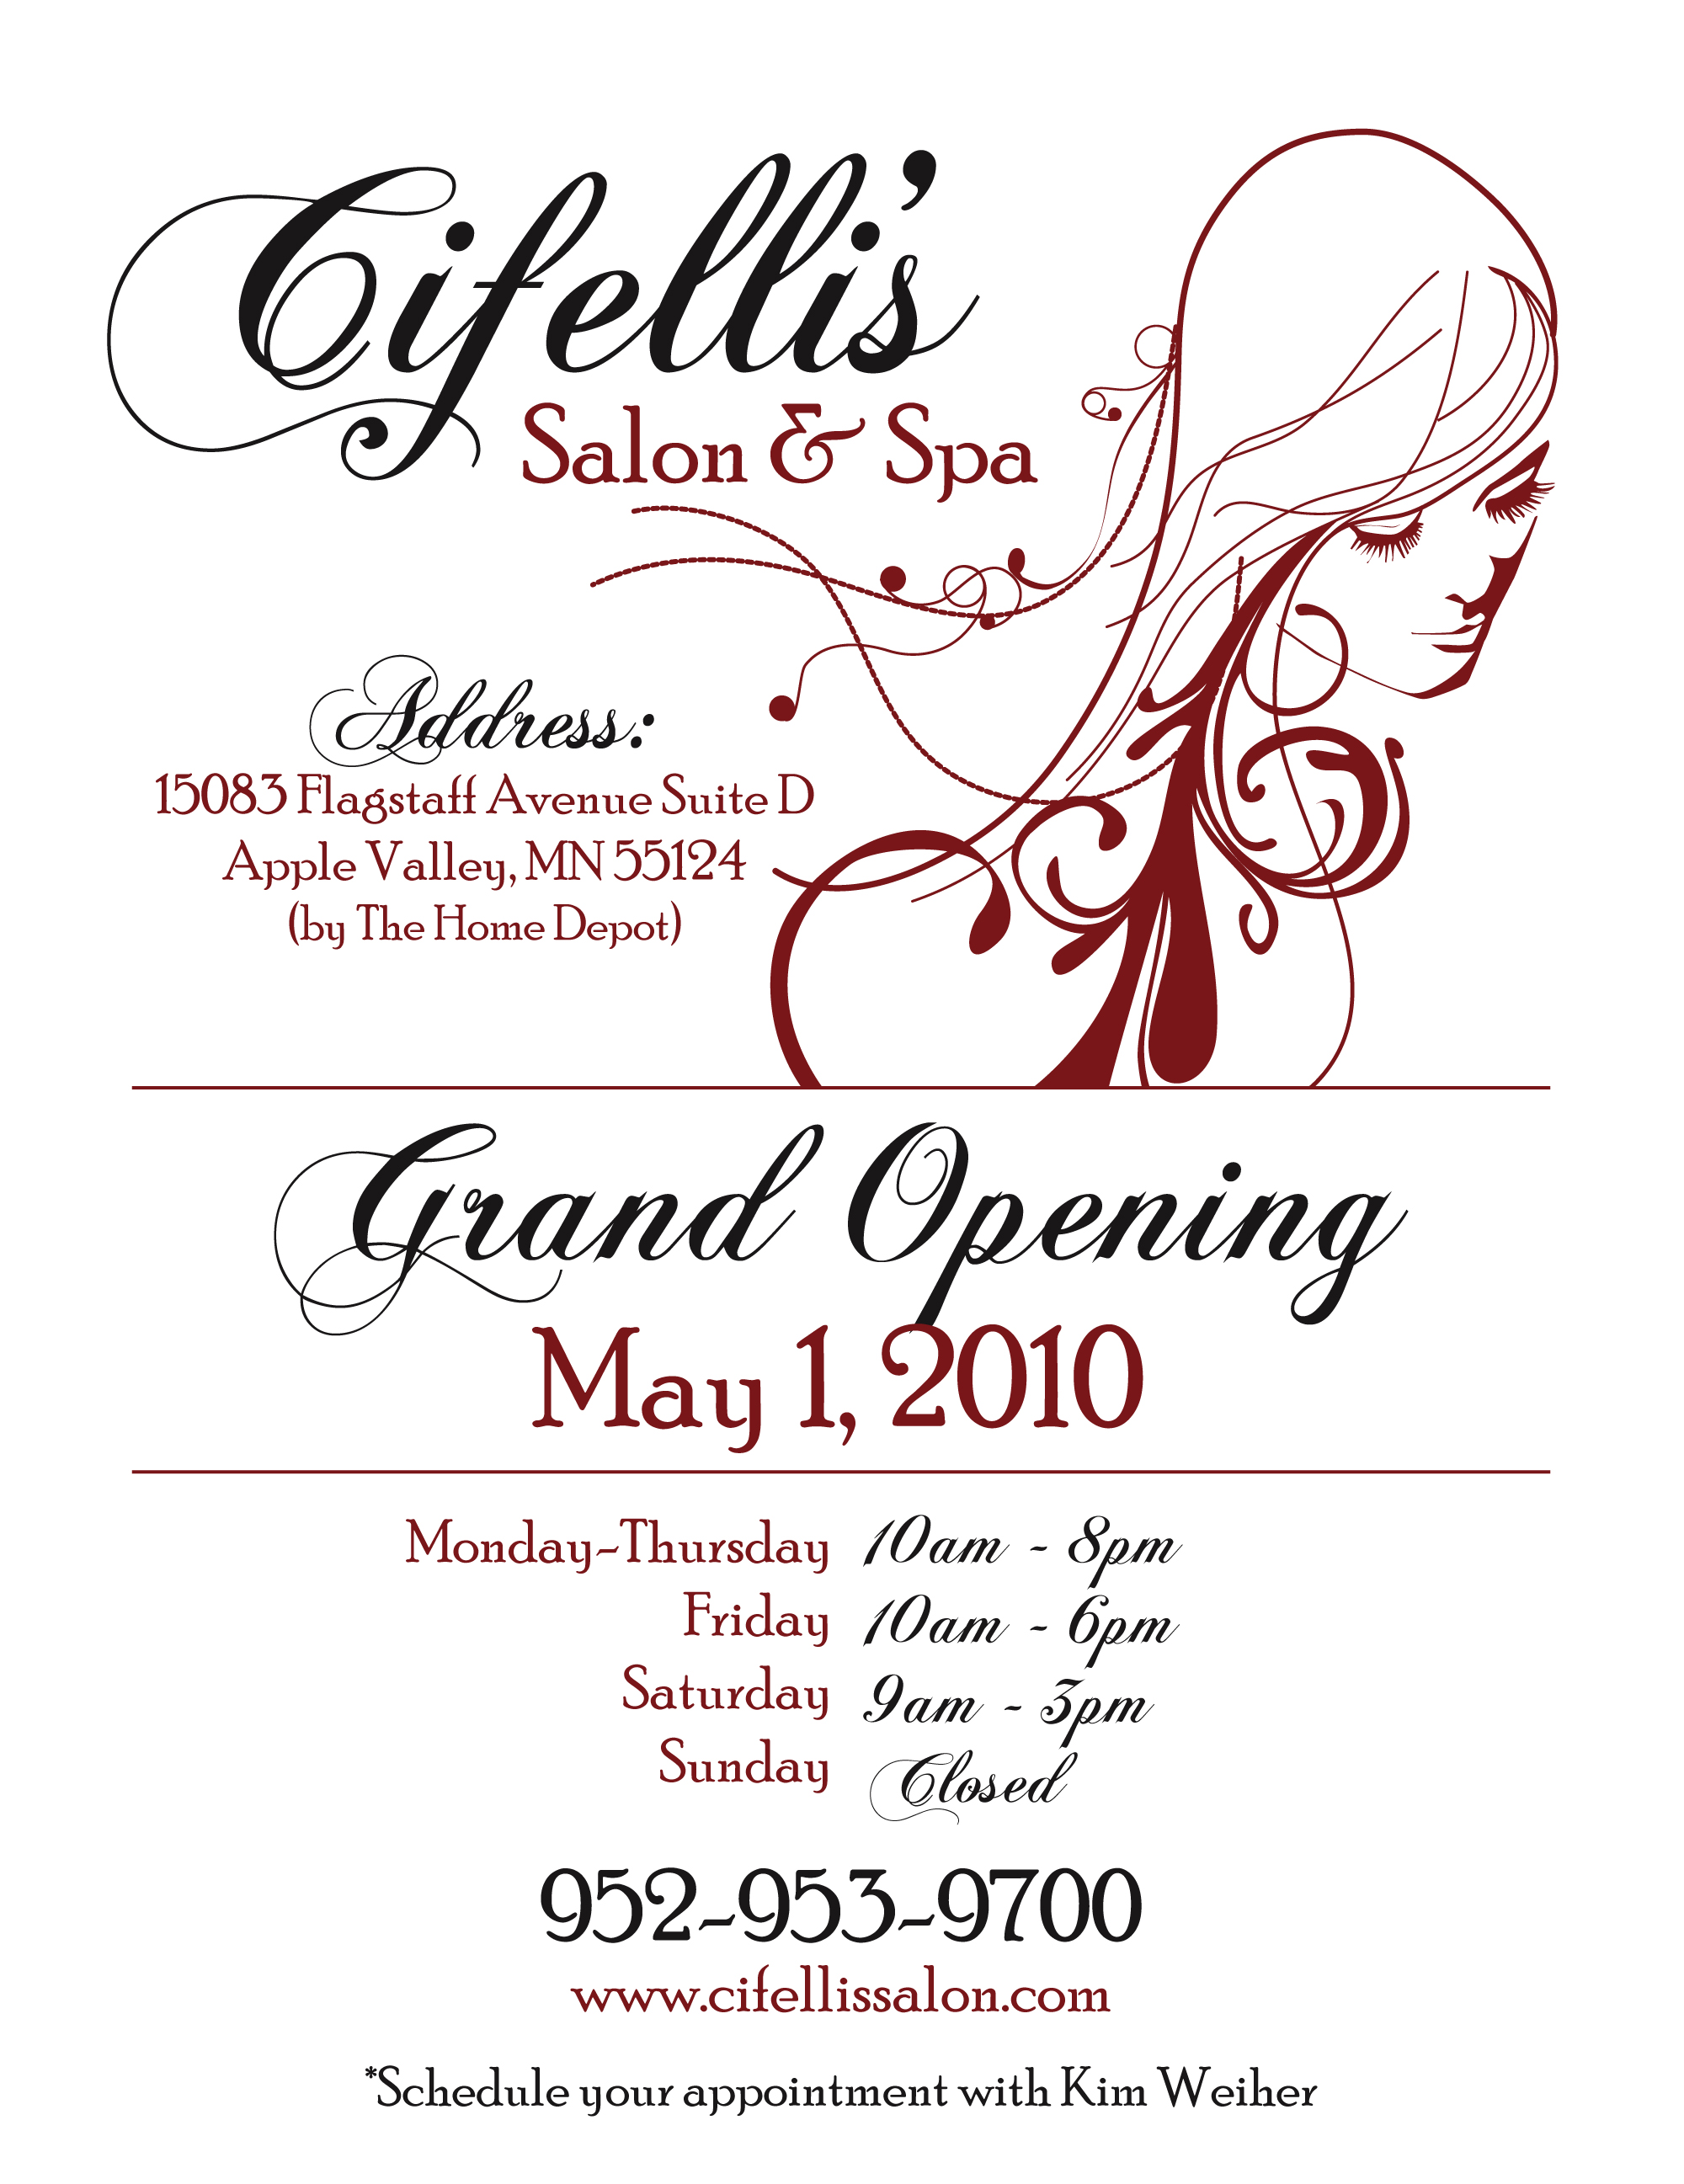 Hair Salon Grand Opening Flyer http://www.coroflot.com/jroygraphics/cifellis-salon-n-spa